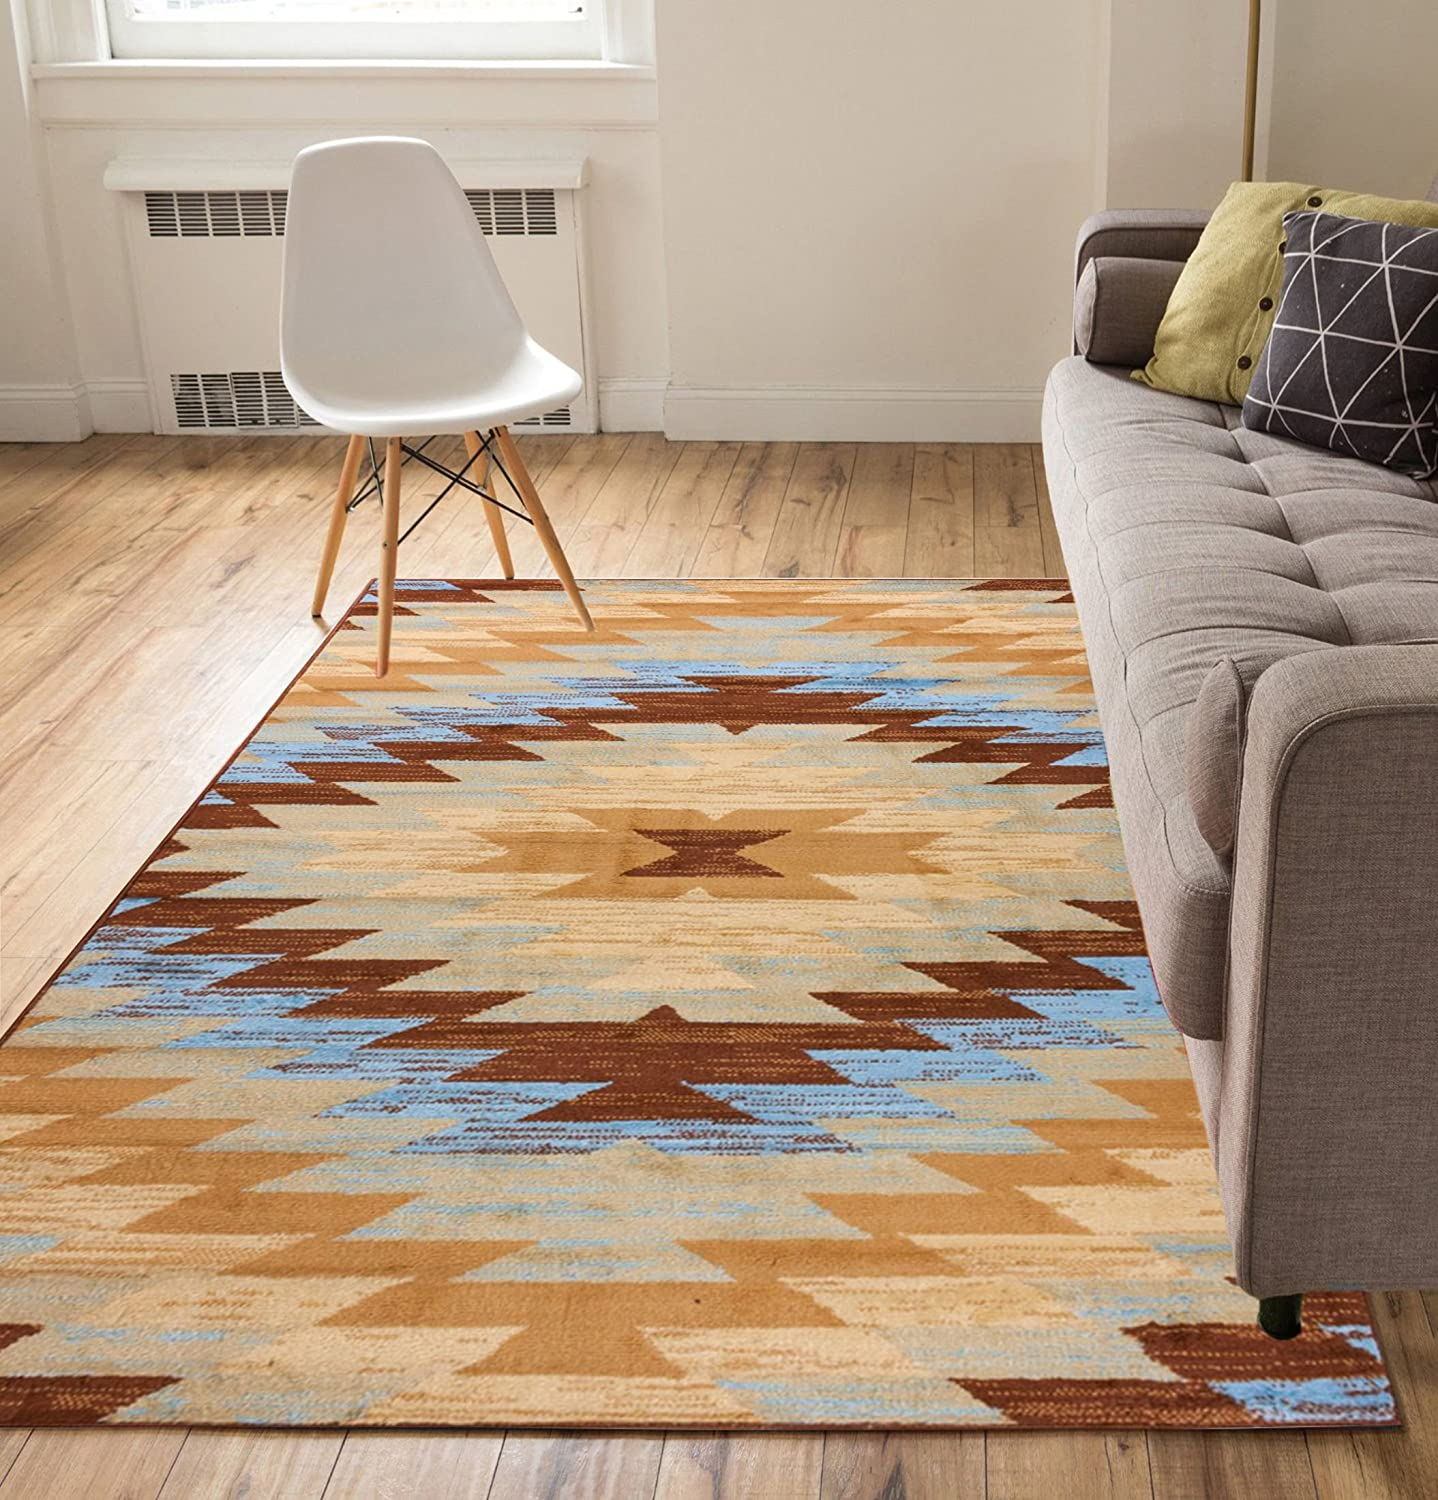 Details About 8 X 10 Western Decor Rugs Southwest Style Living Room Area Rug Native Brown Blue